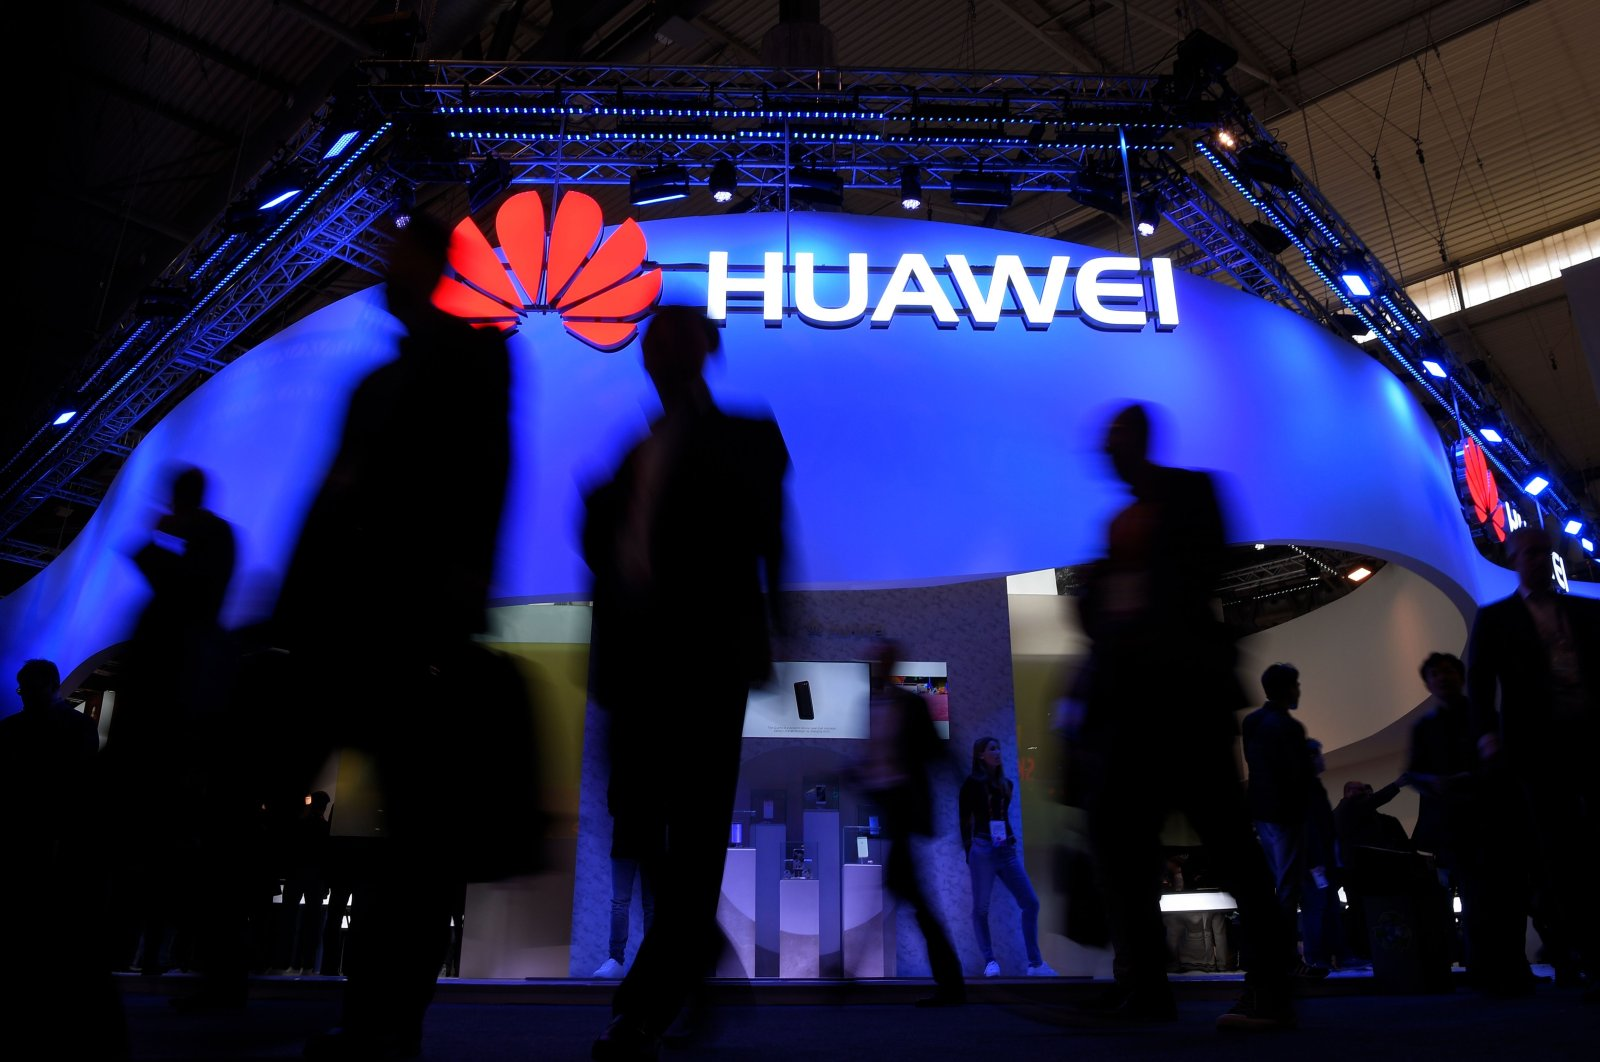 Visitors walk in front of the Huawei stand on the first day of the Mobile World Congress in Barcelona, Spain, Feb. 27, 2017. (AFP Photo)